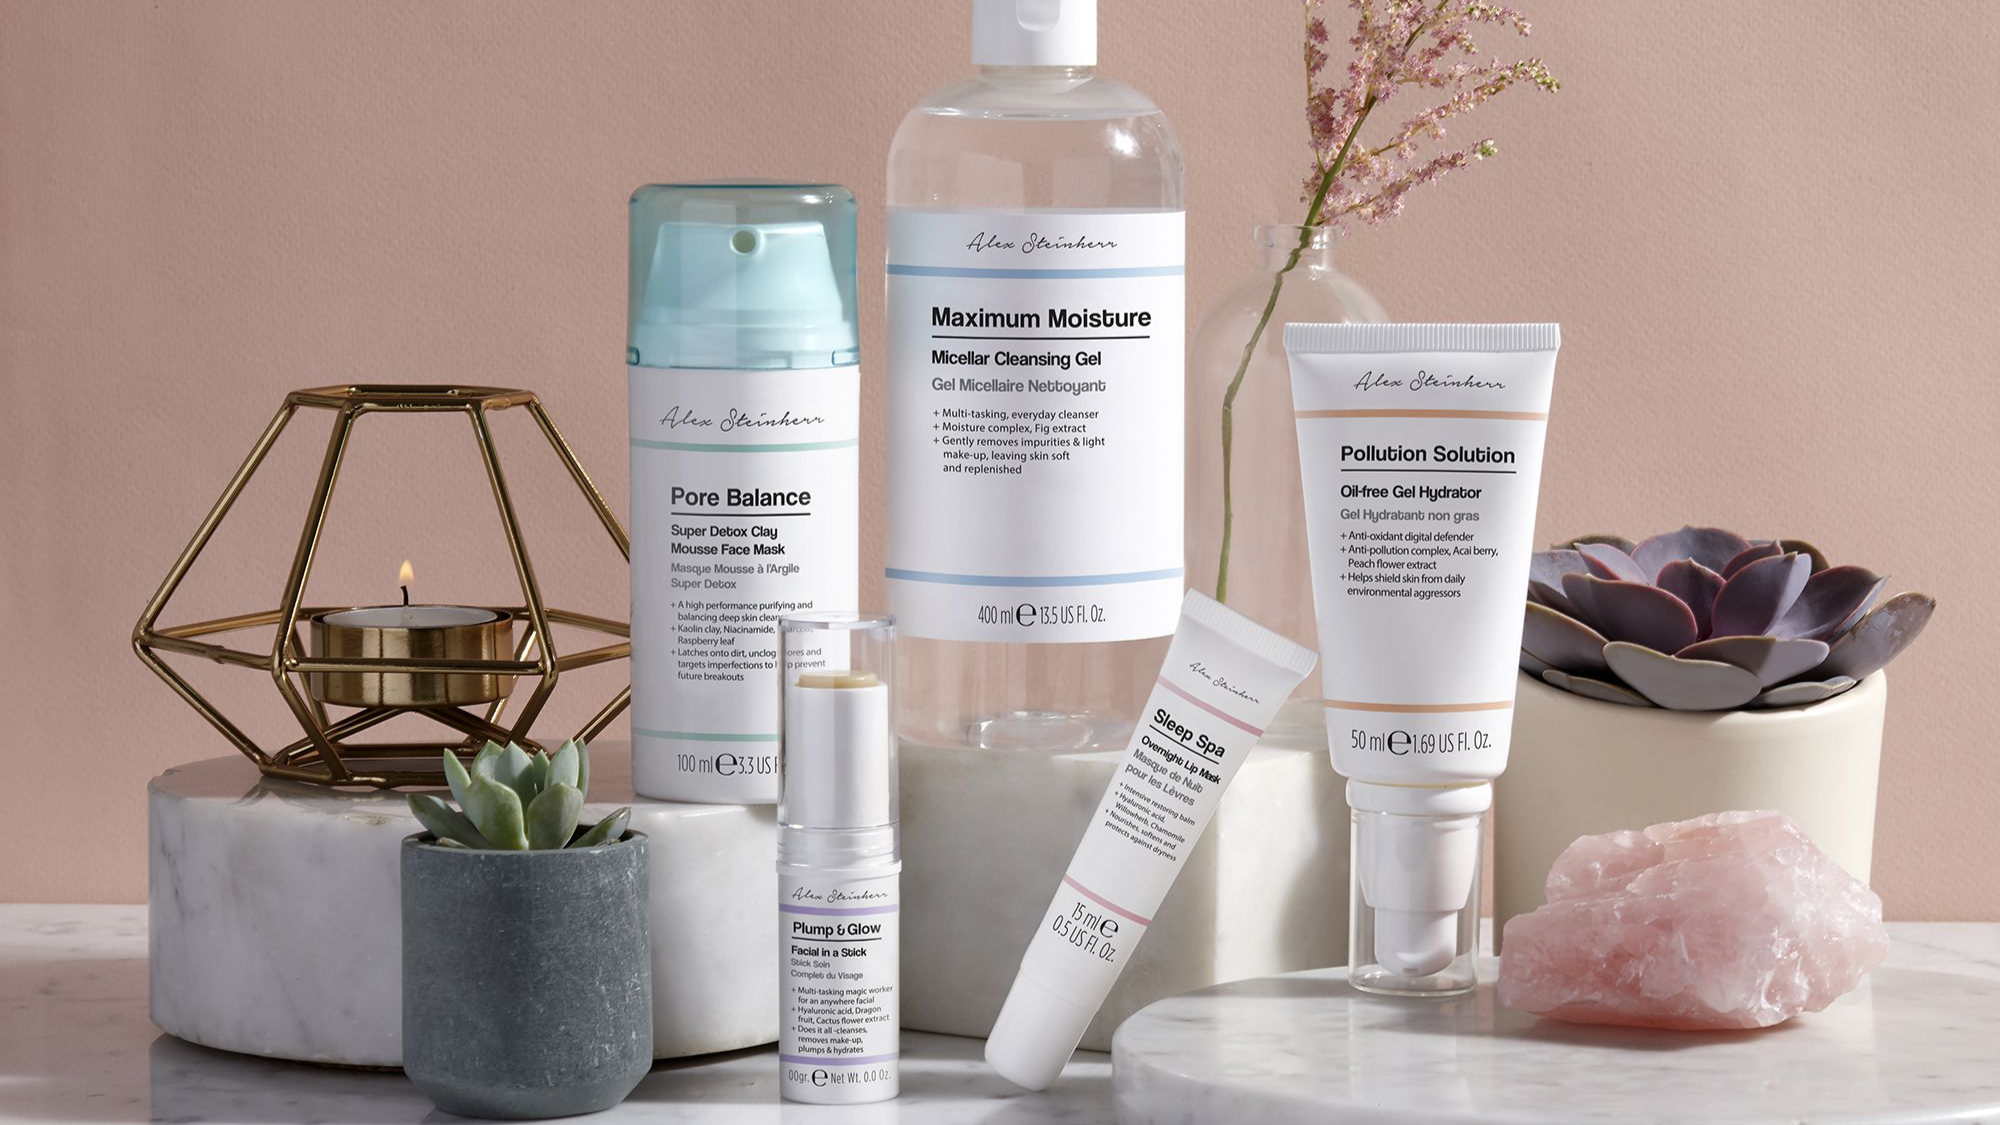 Primark Launches Affordable Skincare Collection With Beauty Guru Alexandra Steinherr